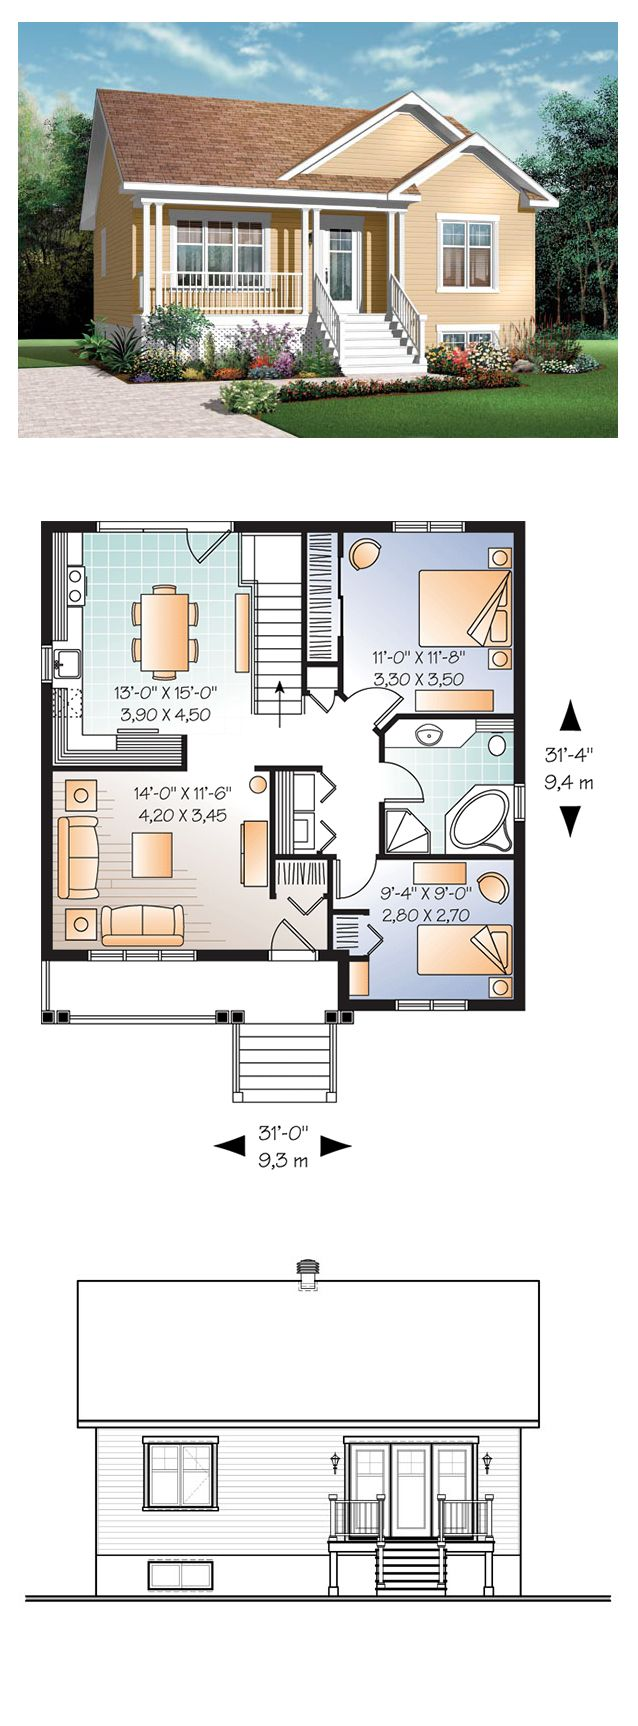 best 25 2 bedroom house plans ideas that you will like on pinterest - Small House Blueprints 2